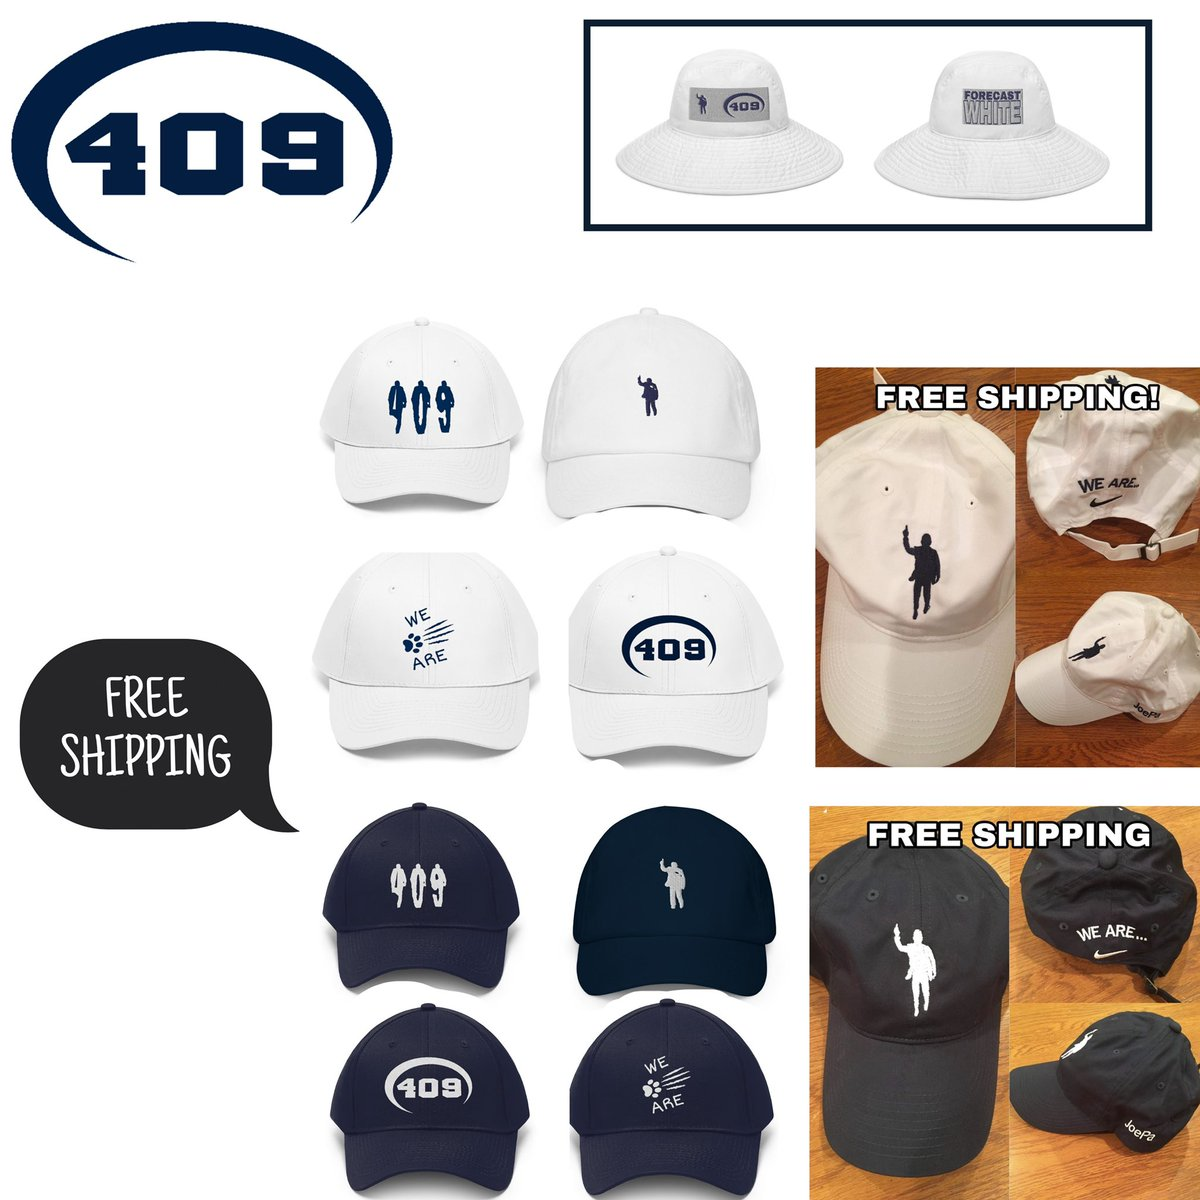 Asking for some Help, Please Follow, Like, and Share ⚪️🔵  #bwo #psu #psufootball #psugrad #pennstate #pennstatealumni #wearepennstate #ironlioncollectibles #ilovepennstate #pennstateforever #Nittanylions #nittanylion #nittanynation #bluewhite #lionsden #happyvalley